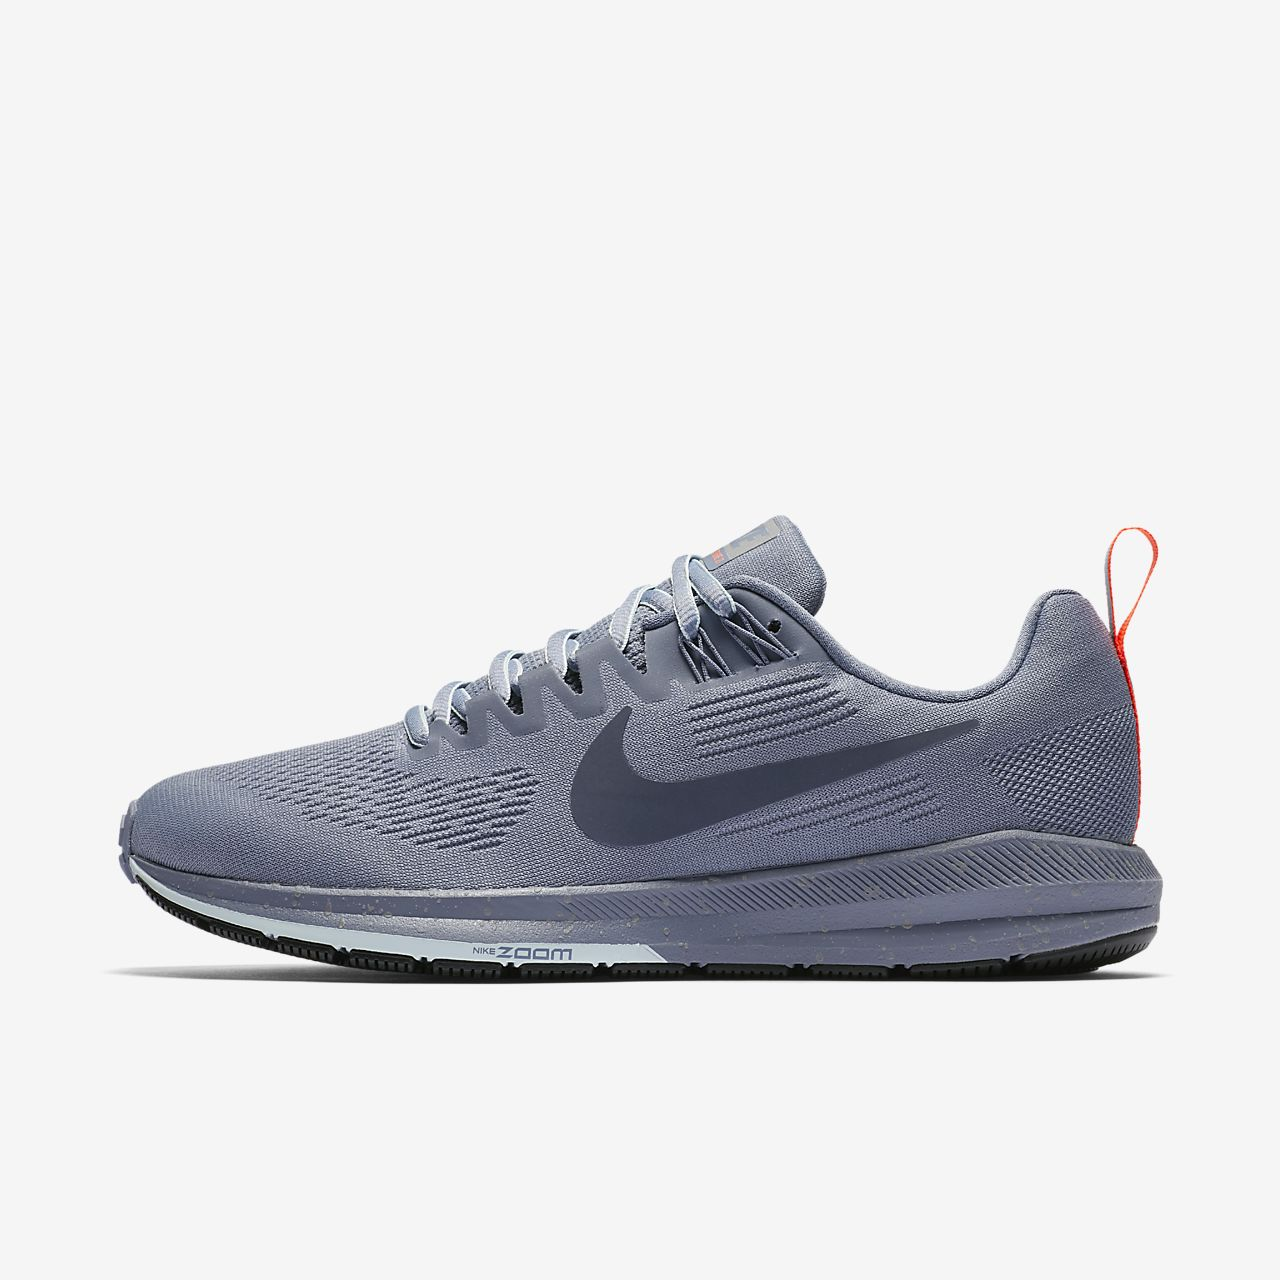 8e5f968a0c314 ... where can i buy nike air zoom structure 21 shield womens running shoe  32304 f7c06 ...